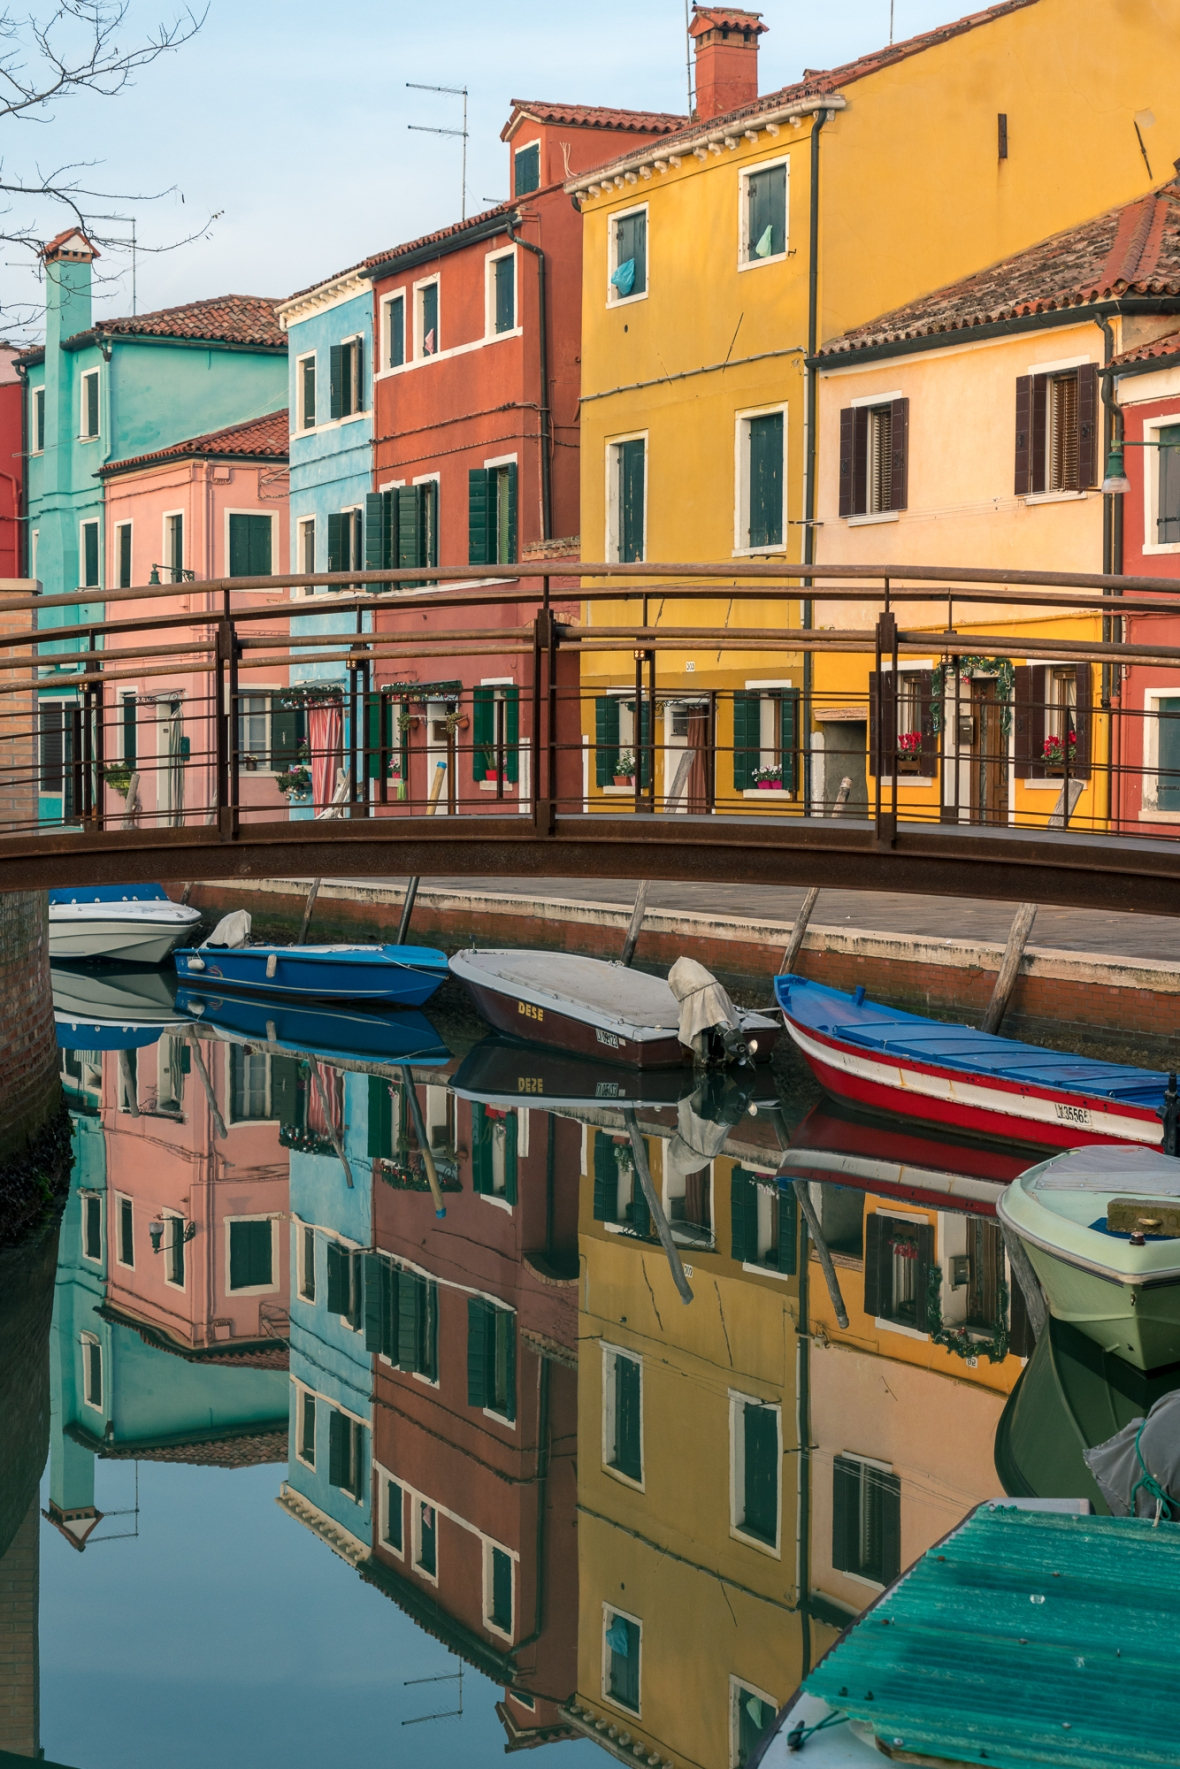 Street and travel photographs of Burano Venice Italy taken by Mary Catherine Messner for mctravelpics.com.